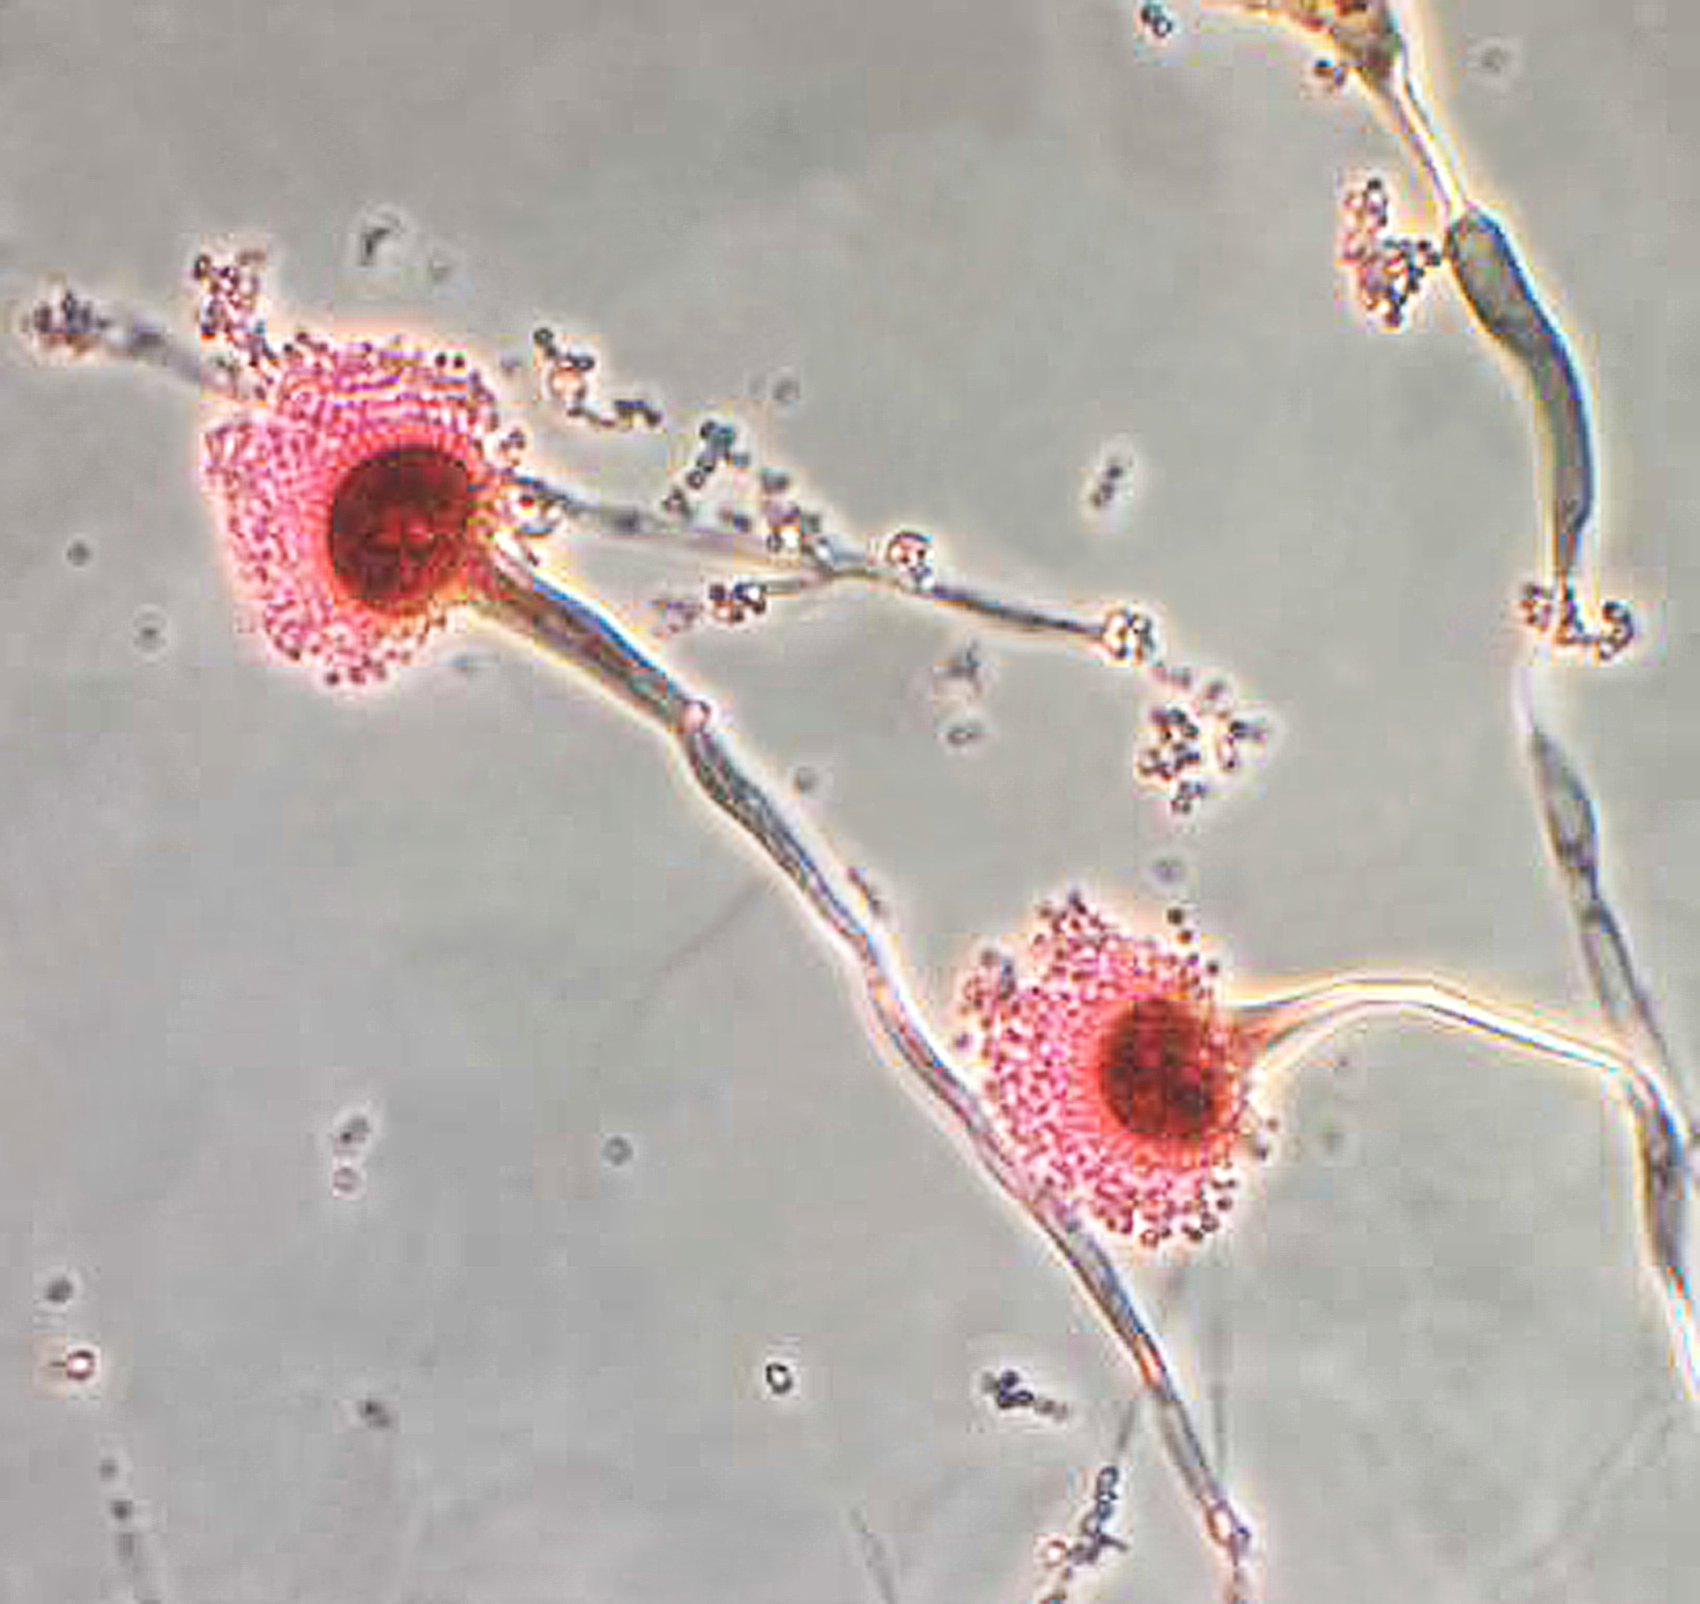 chemical probe finds fungal organism function  activity